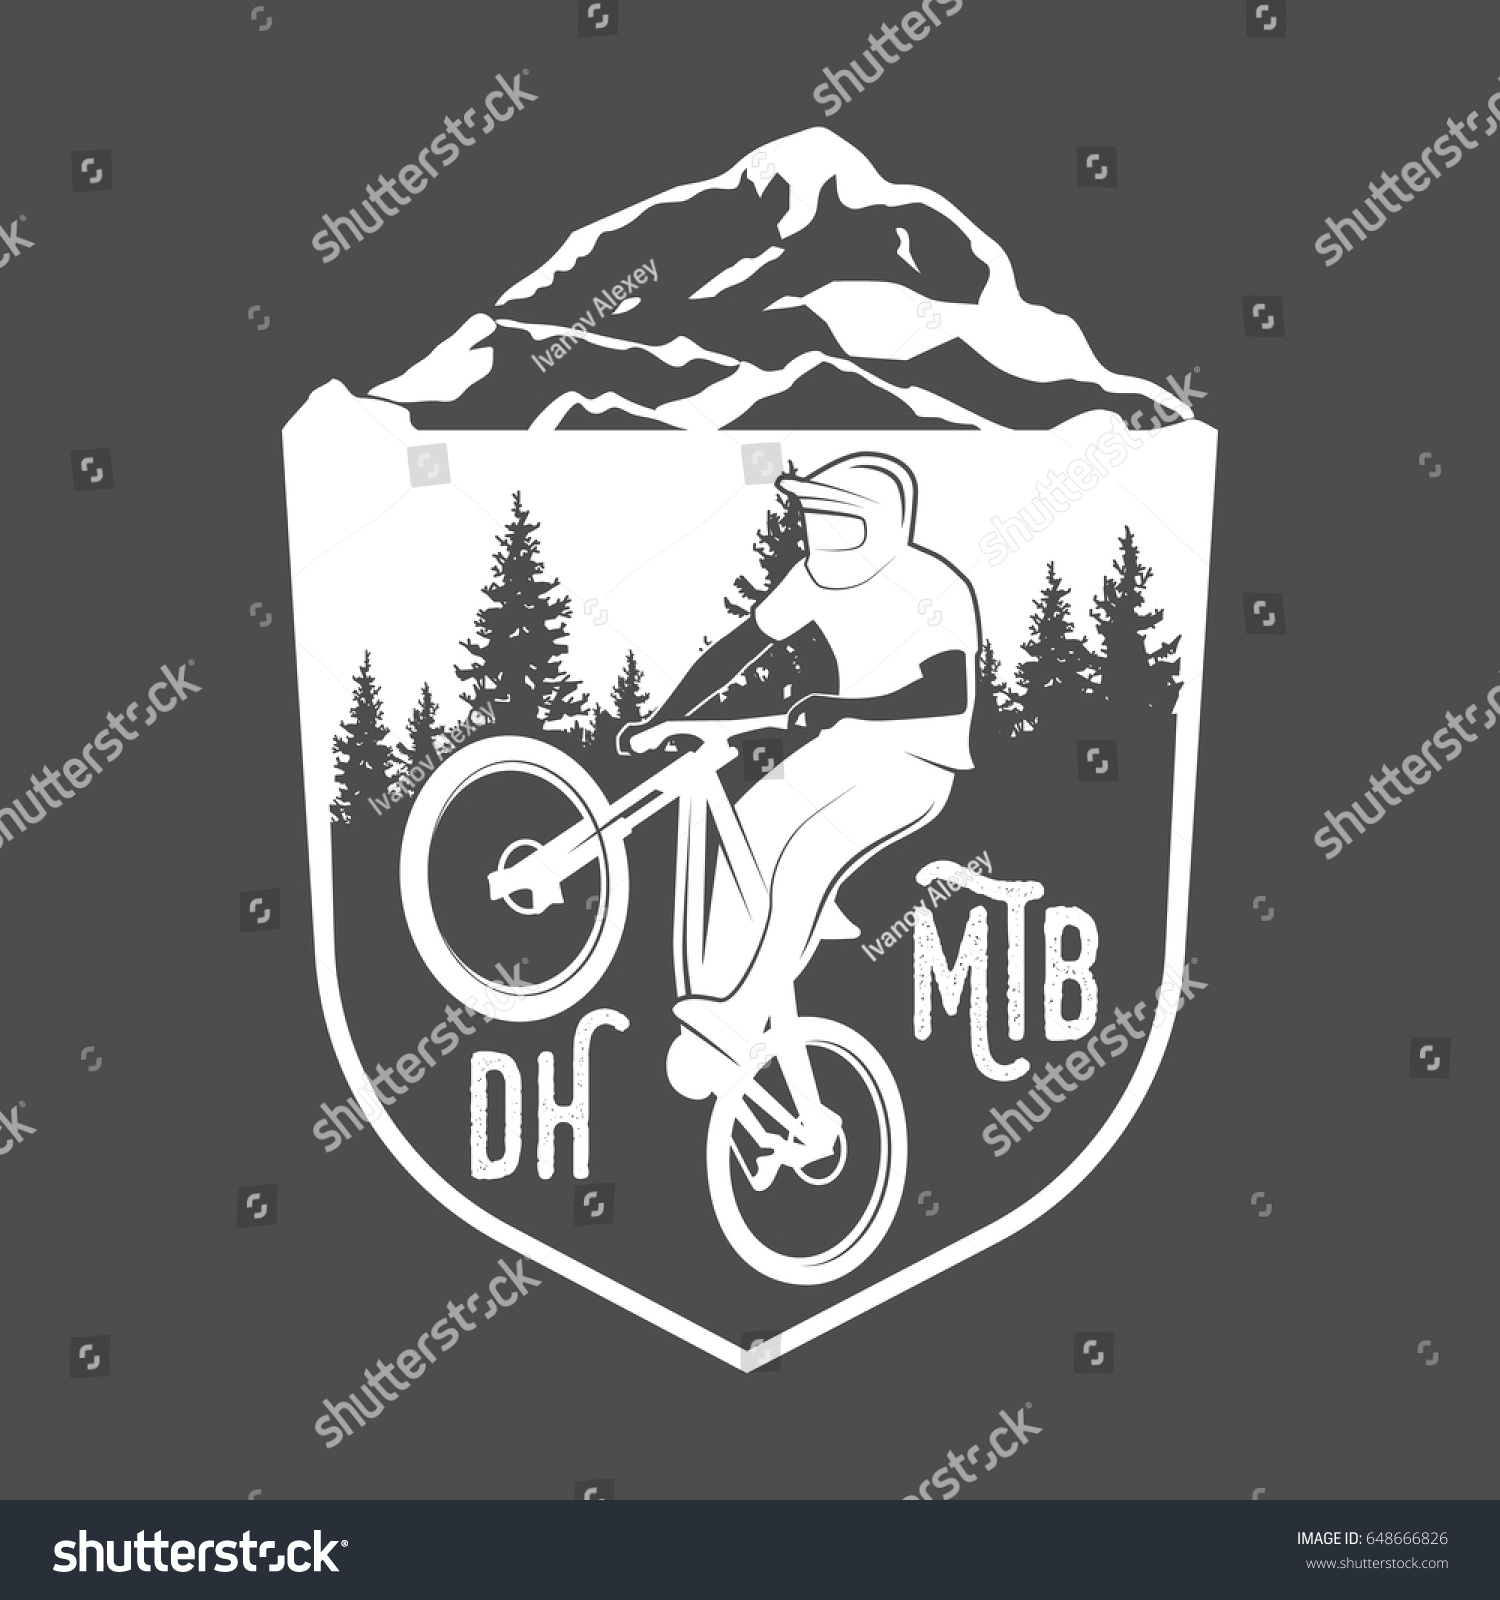 Vintage Modern Bicycle Shop Logo Badges Stock Vector 648666826